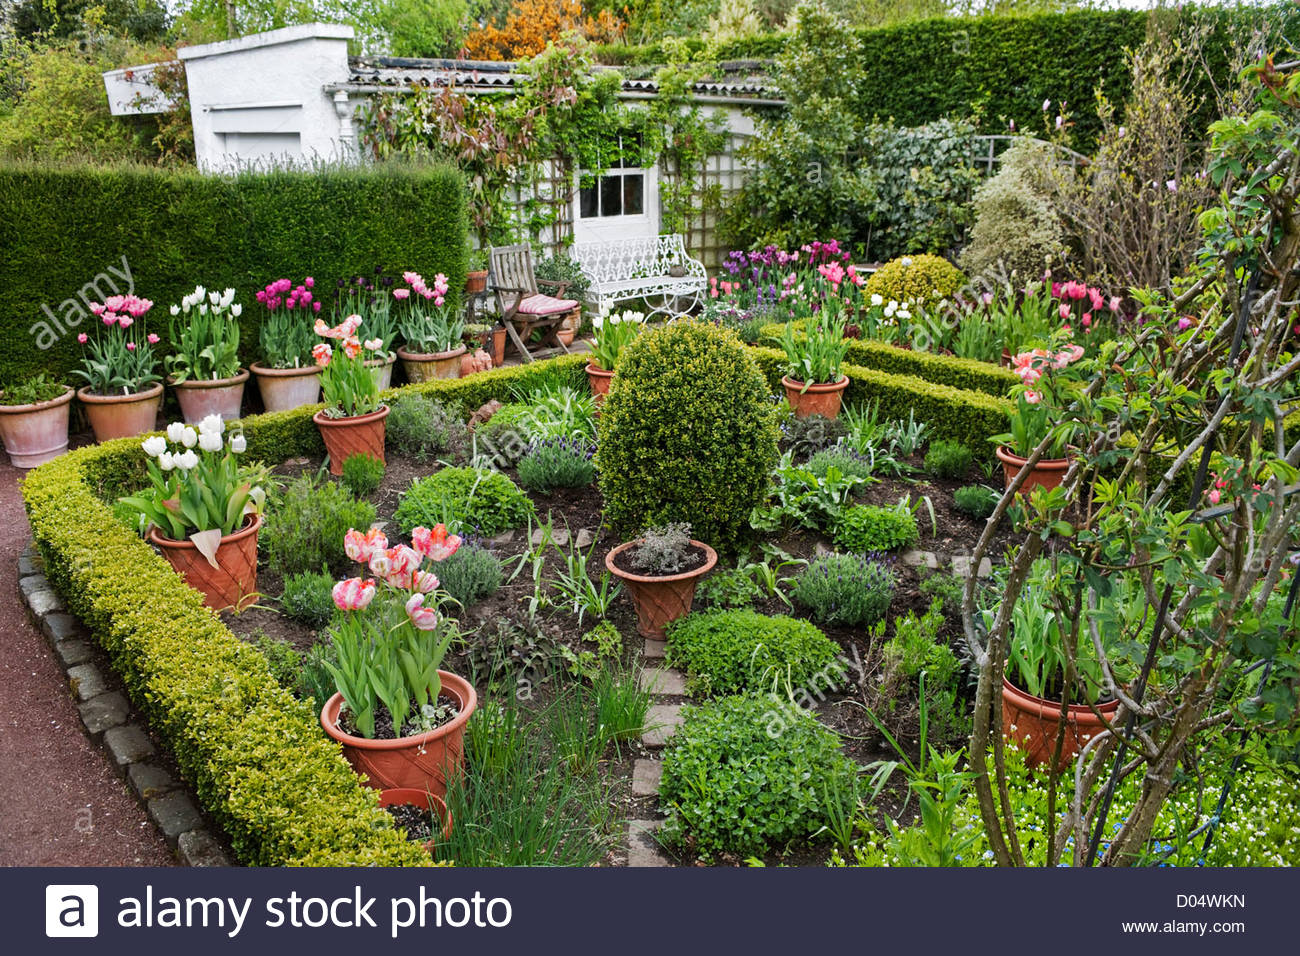 potager garden with herbs and tulips in containers 39 roscullen 39 stock photo royalty free image. Black Bedroom Furniture Sets. Home Design Ideas